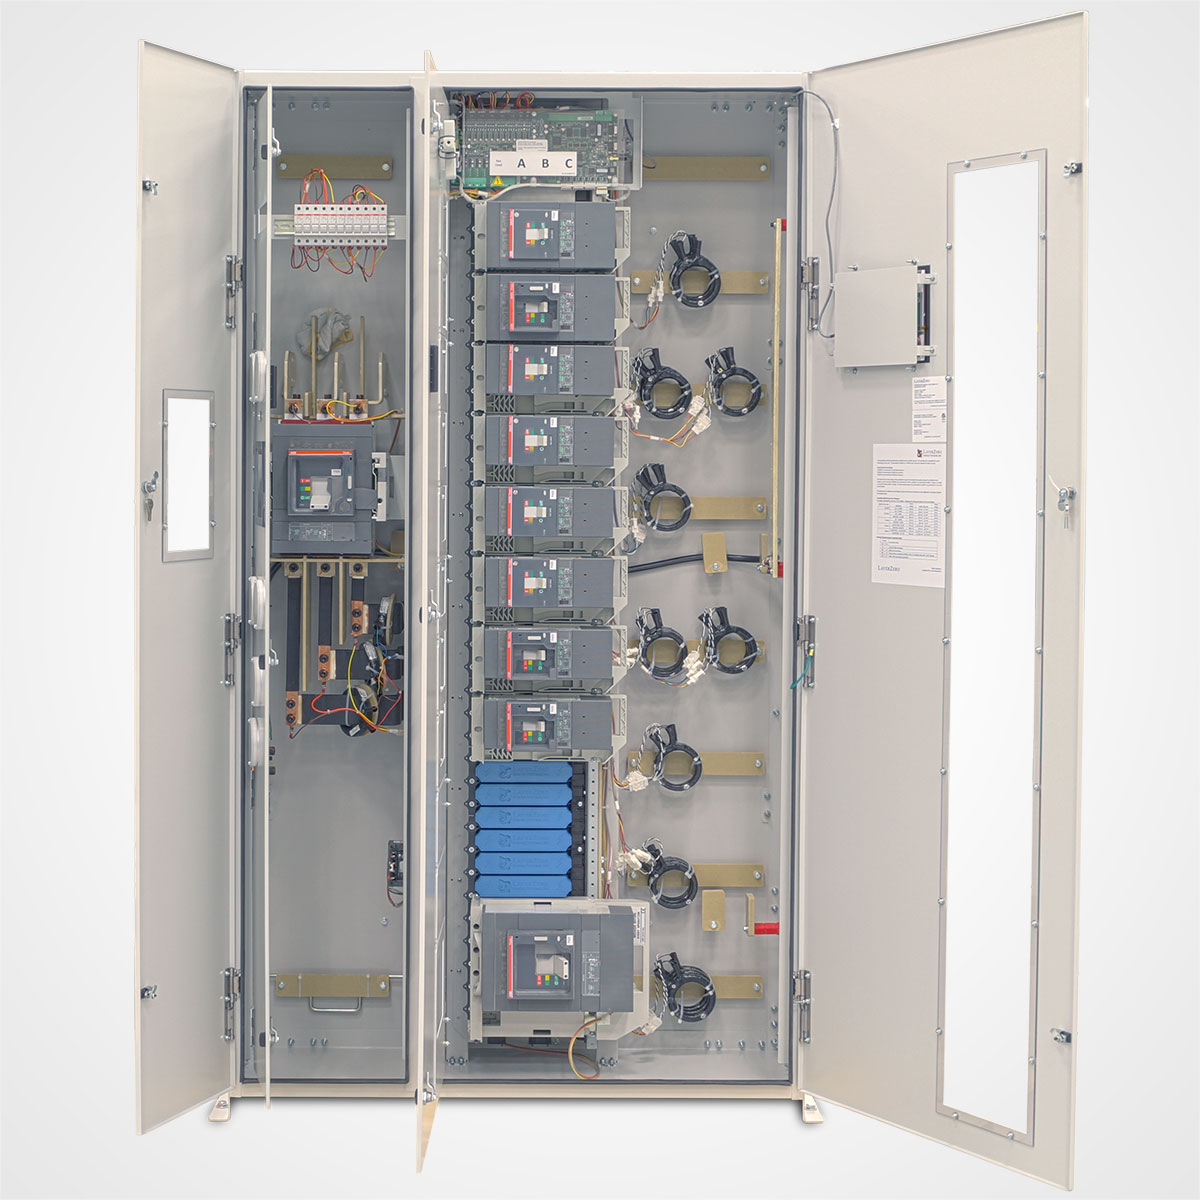 The LayerZero Series 70: eRDP Remote Distribution Panel with Dead Front Doors Open and Circuit Breakers.